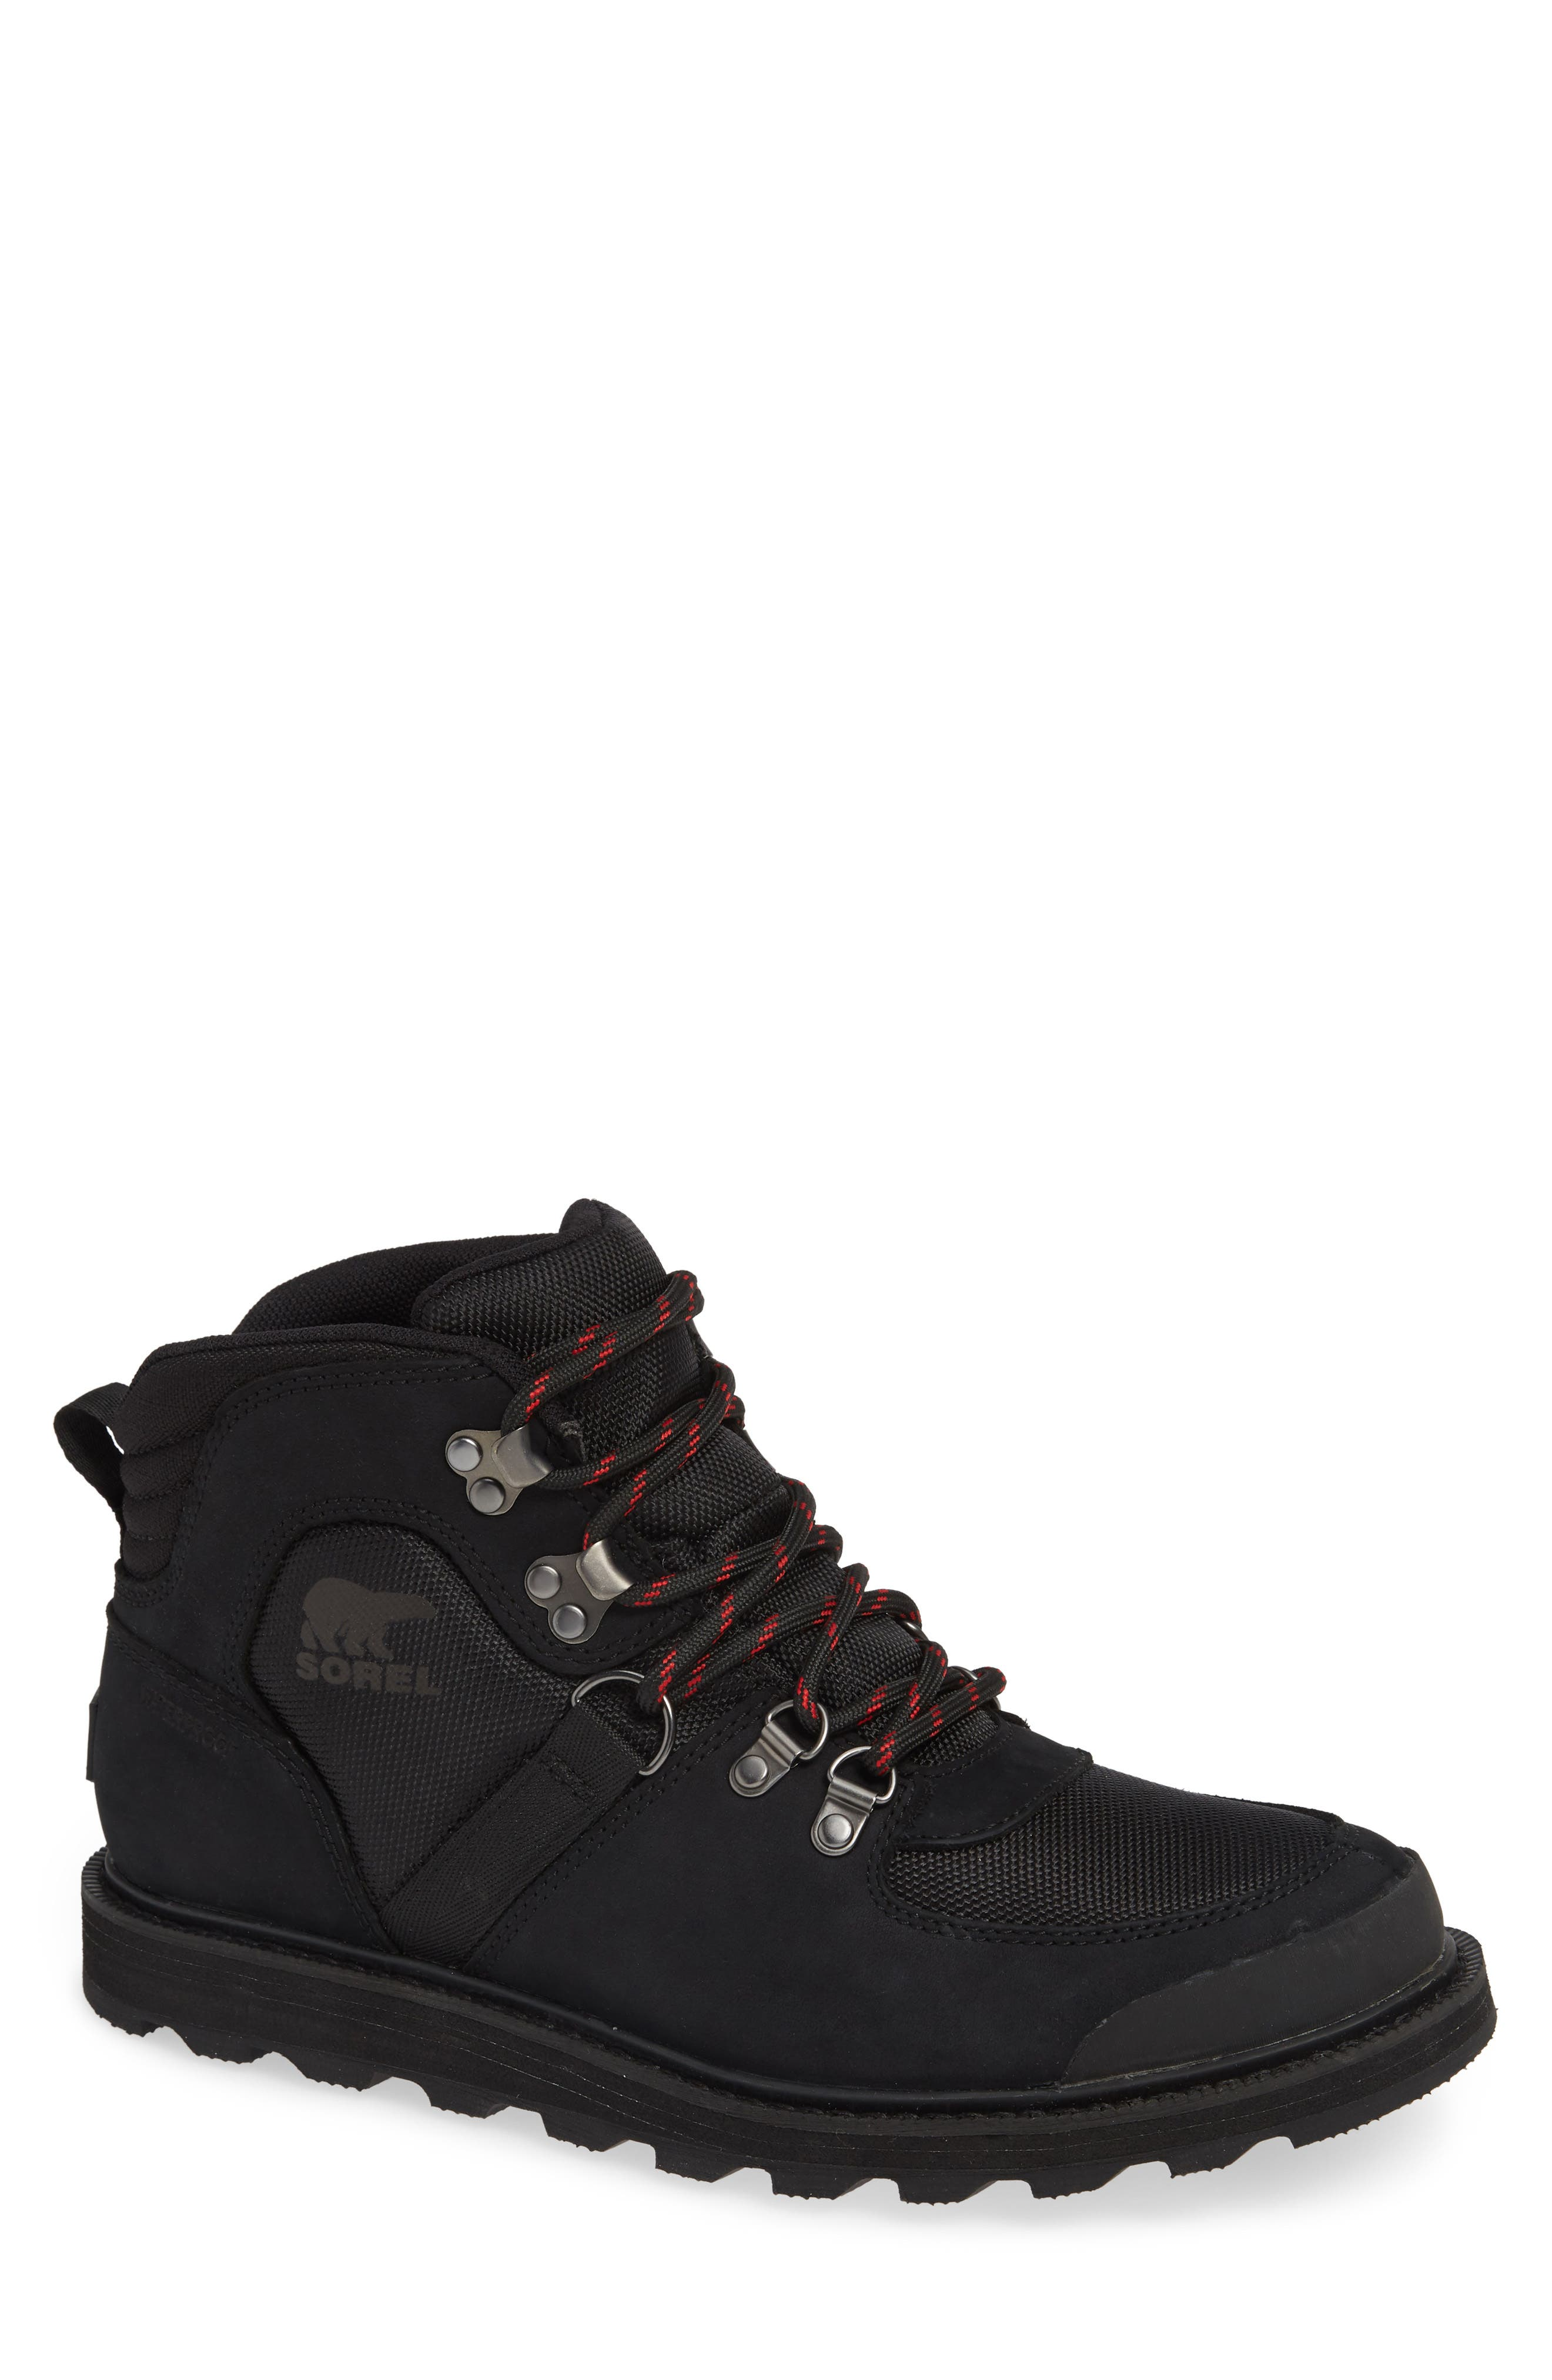 Madson Sport Waterproof Hiking Boot,                             Main thumbnail 1, color,                             BLACK